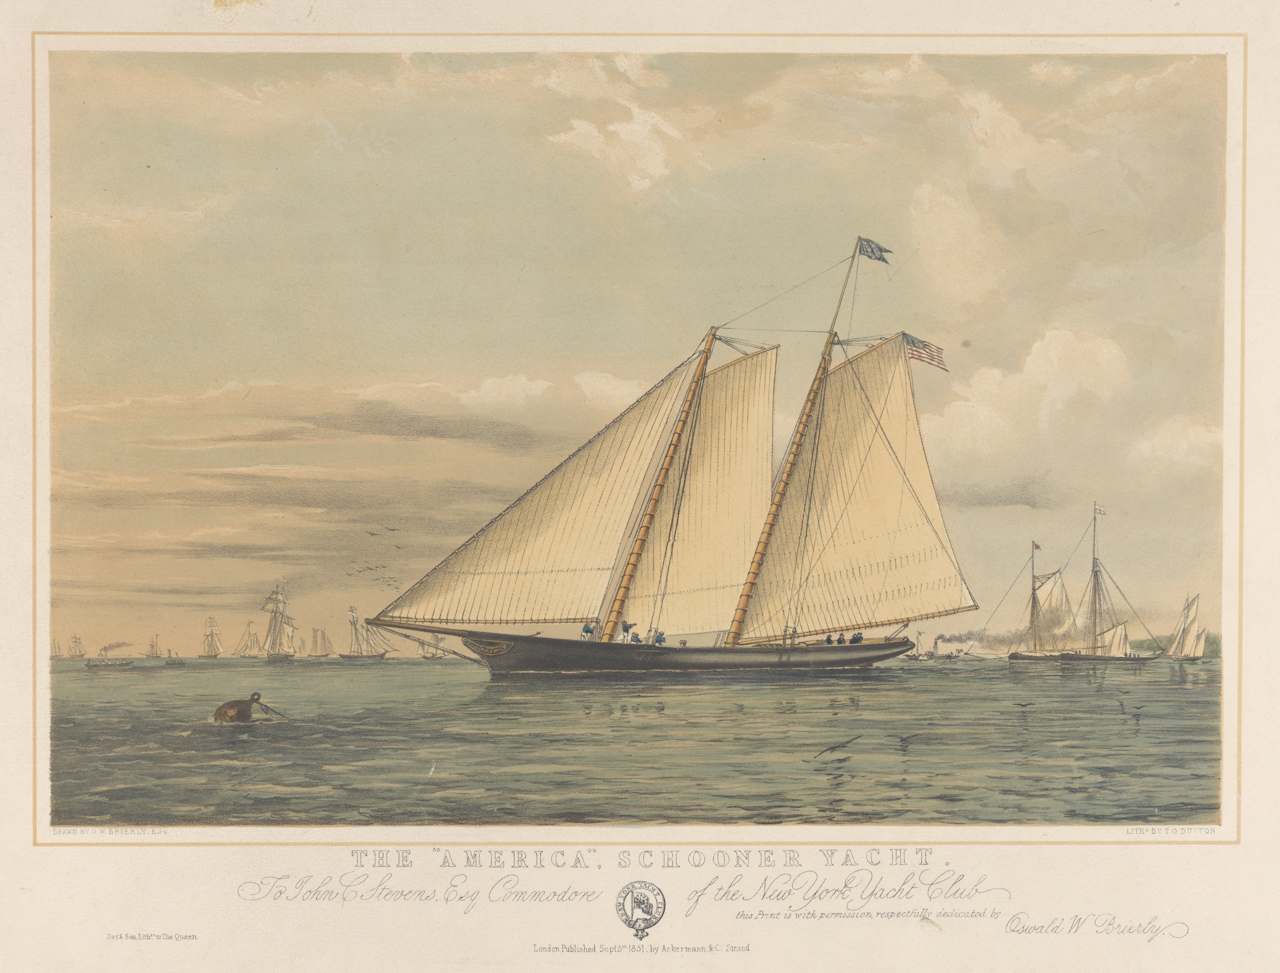 North American Schooner